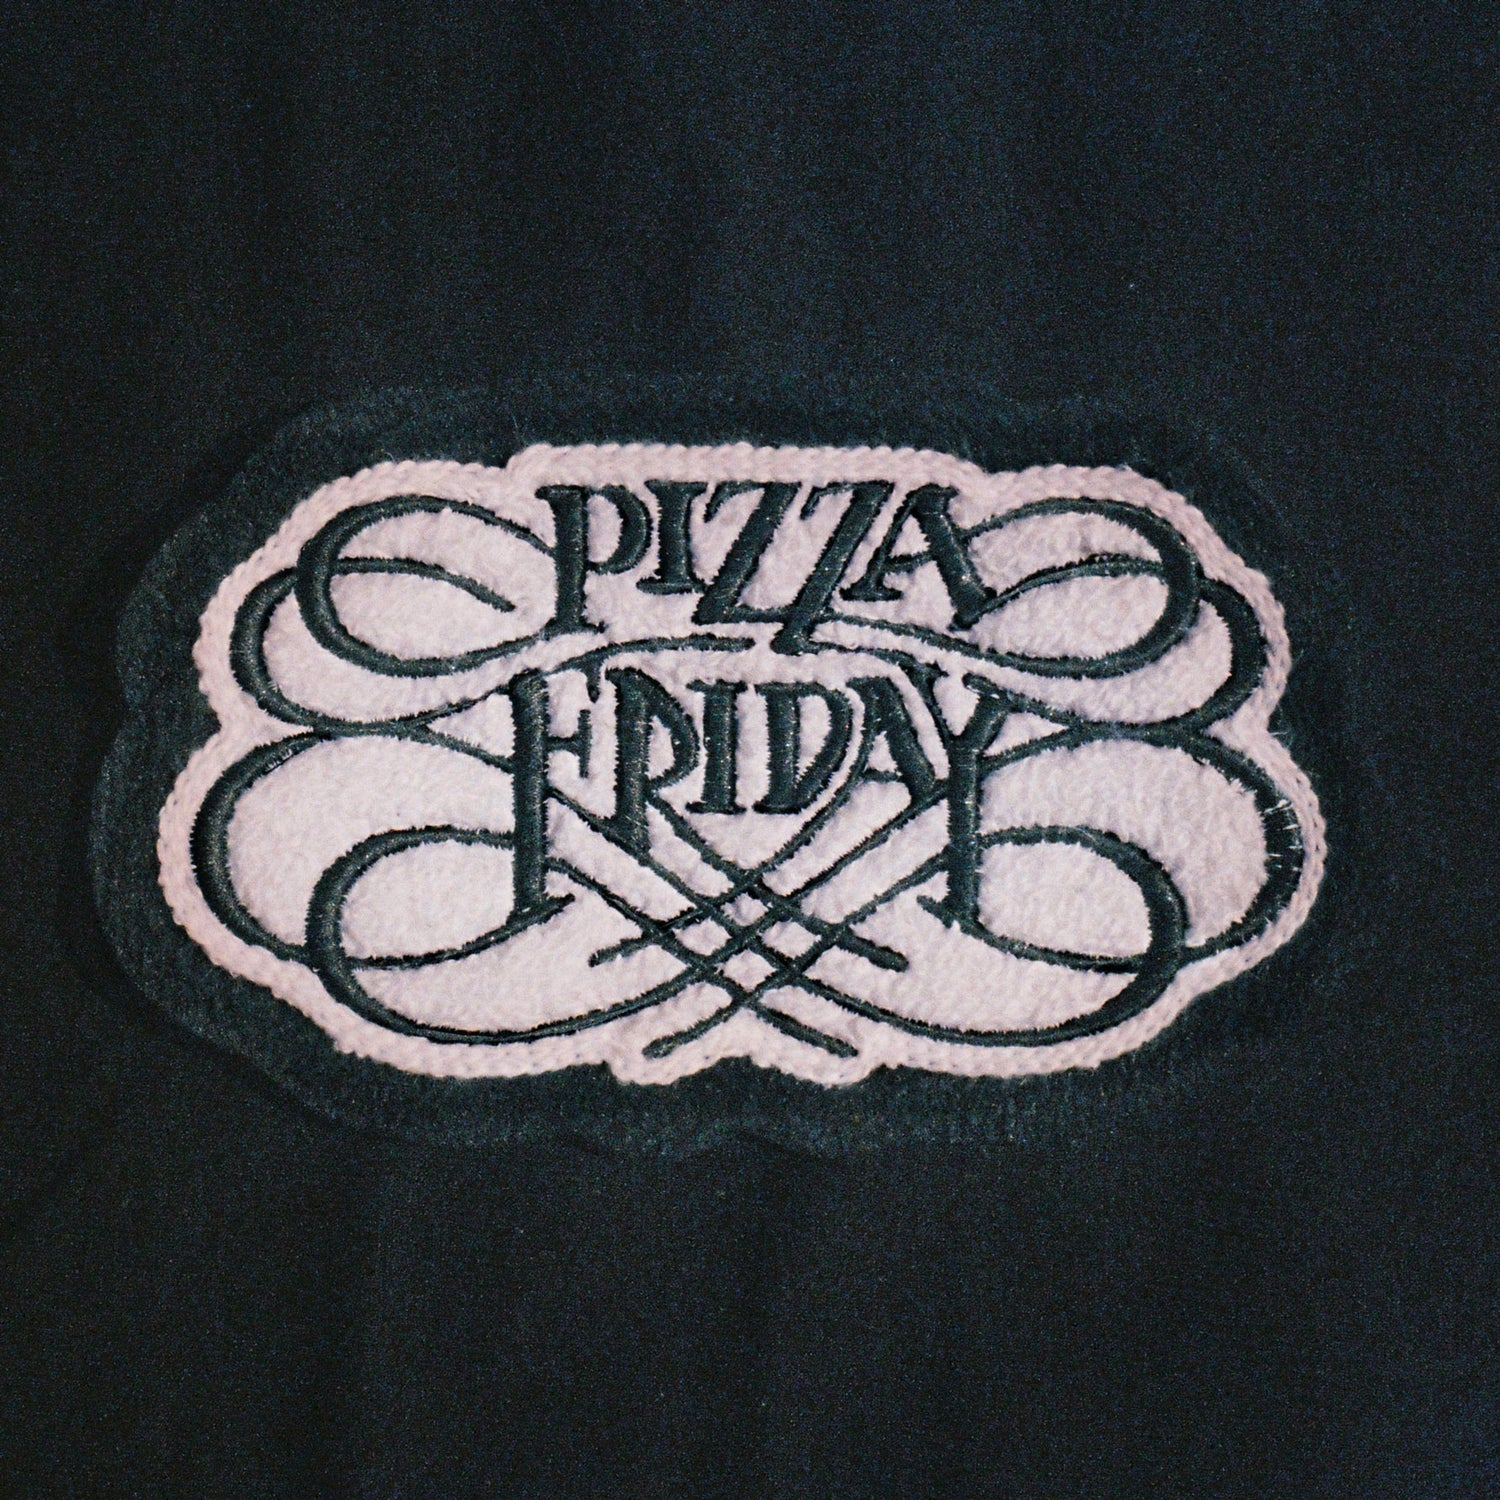 Image of Pizza Friday Team Uniform Patch